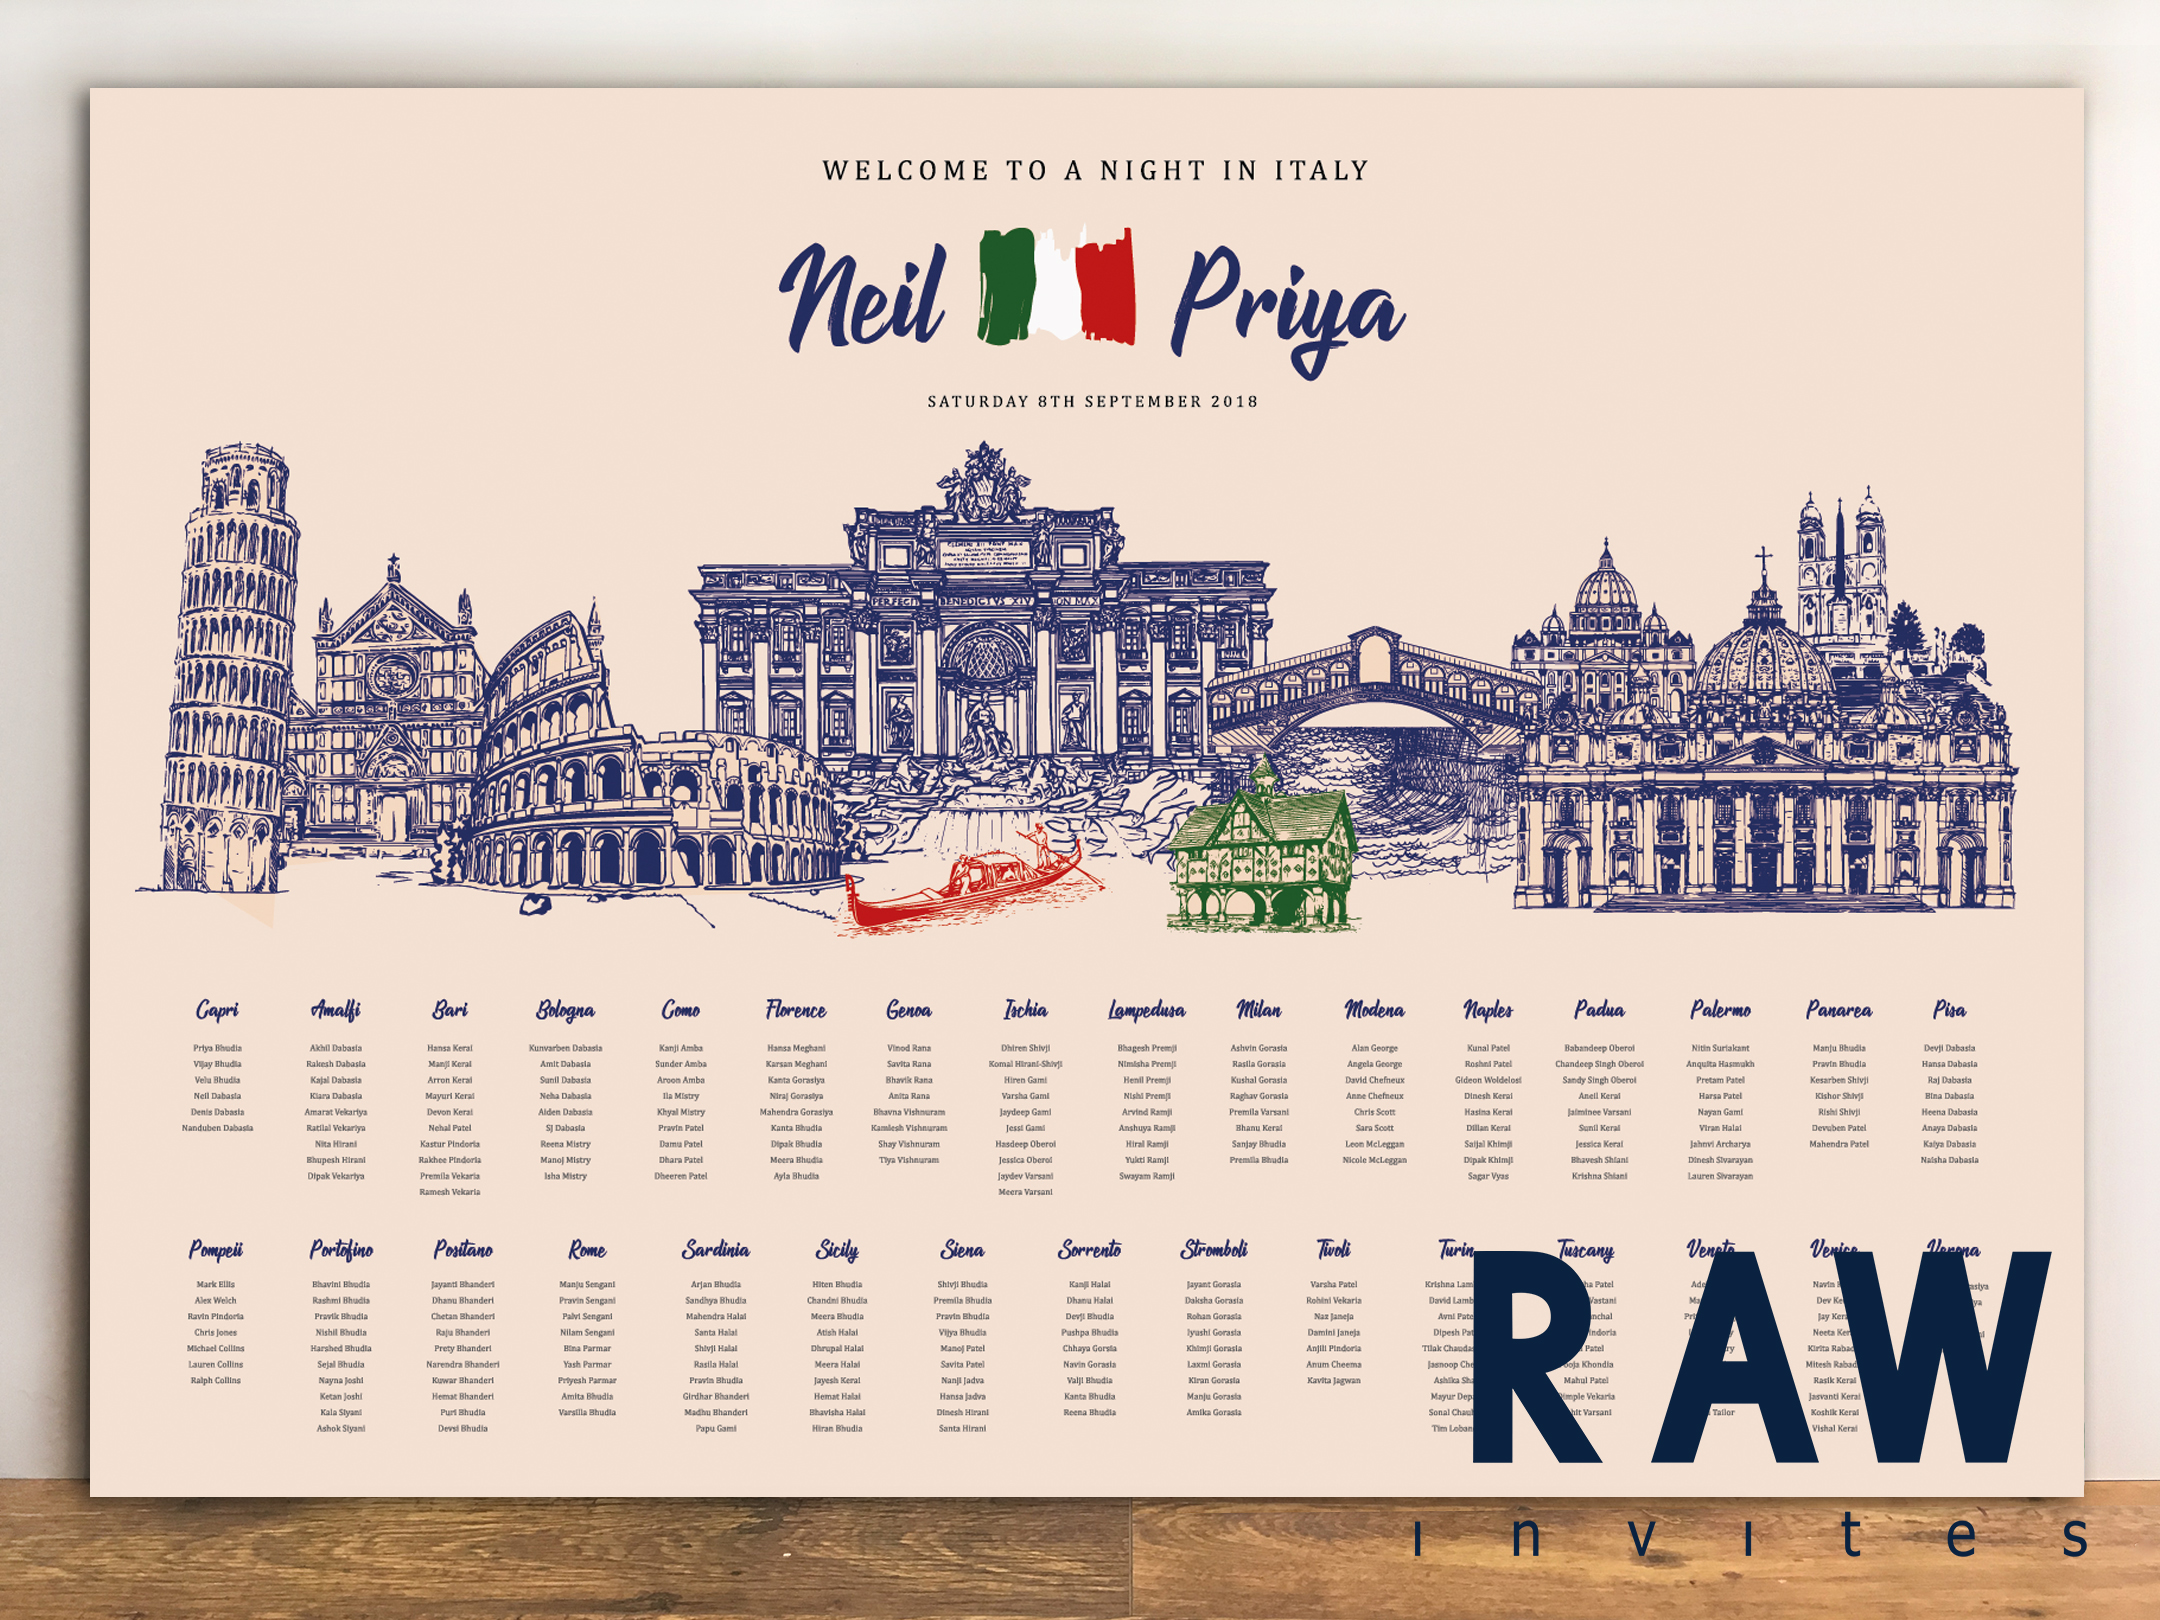 Neil & Priya (Welcome to a night in Italy - The Proposal)